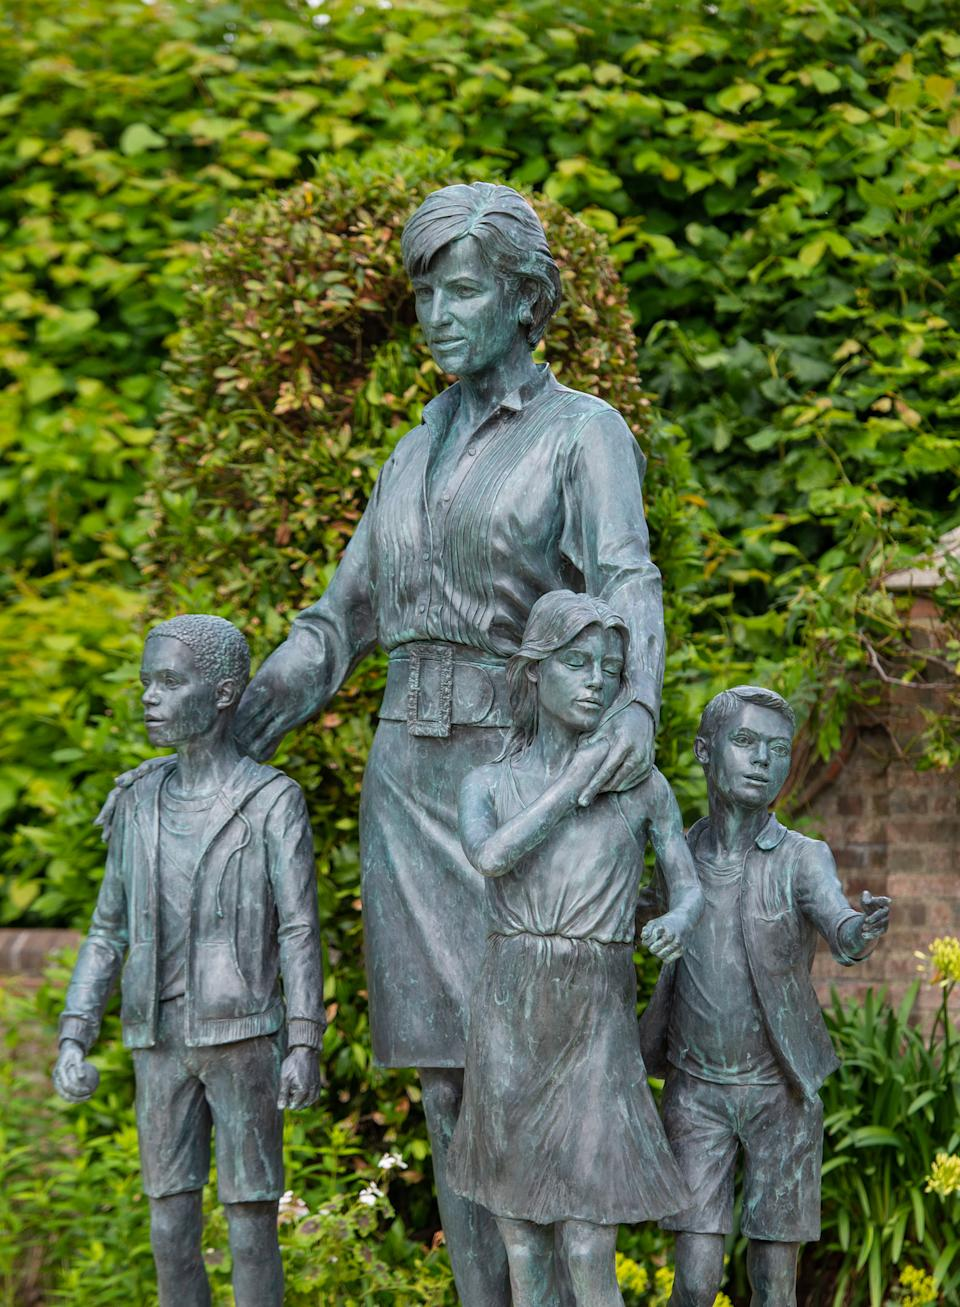 The statue of Diana, Princess of Wales, by artist Ian Rank-Broadley, in the Sunken Garden at Kensington Palace, London. The bronze statue depicts the princess surrounded by three children to represent the